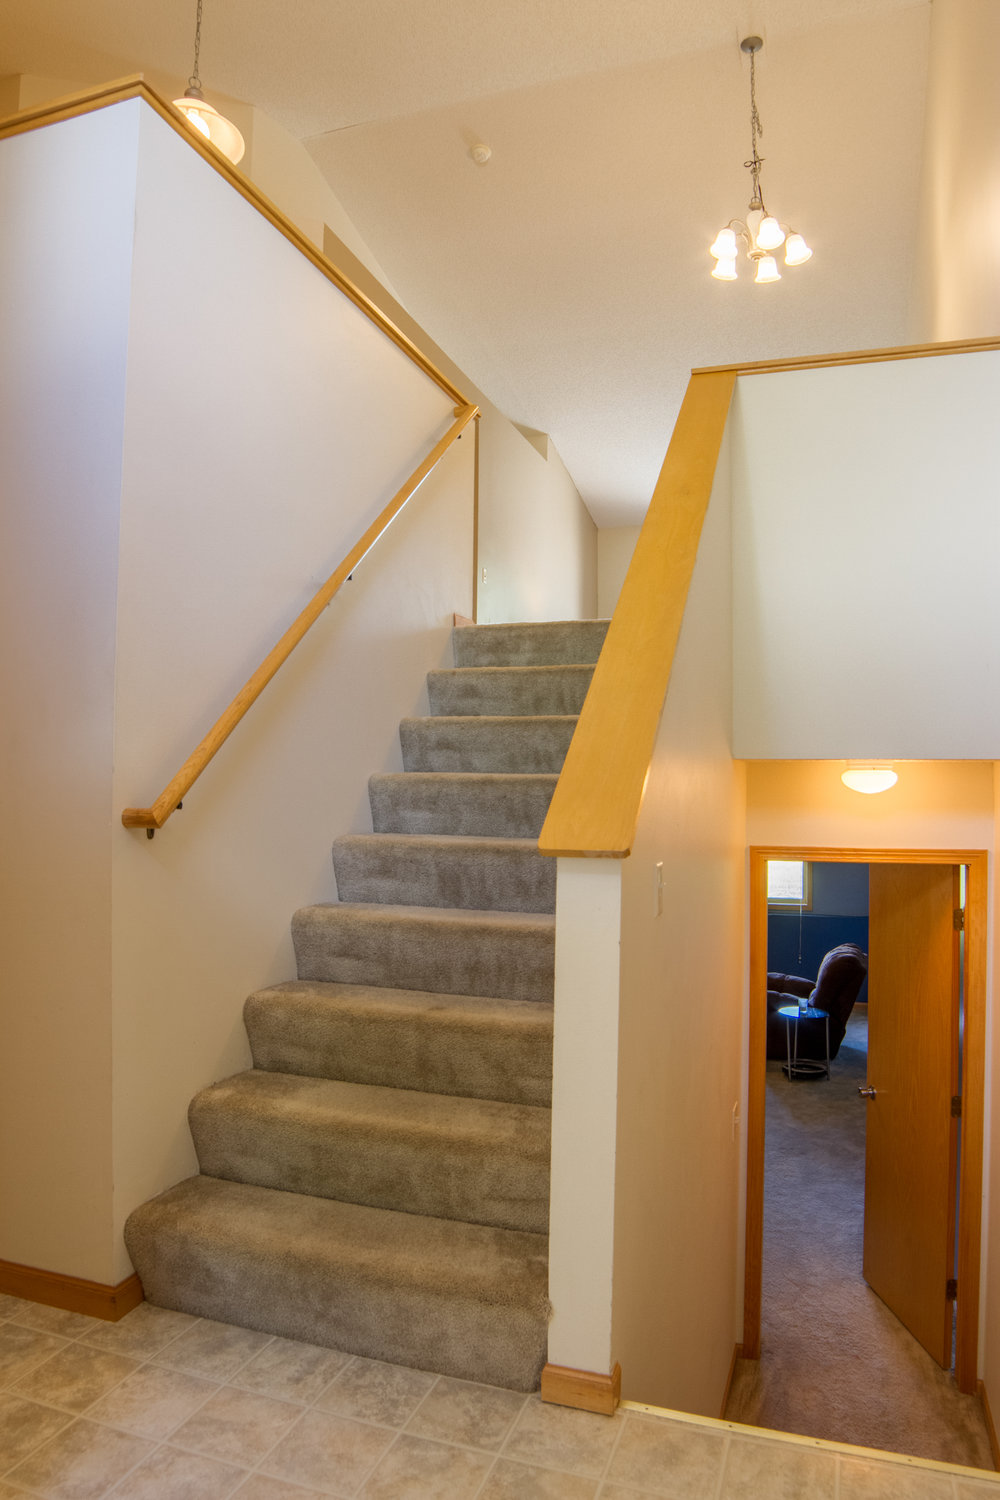 Stair Case, real estate, house, home